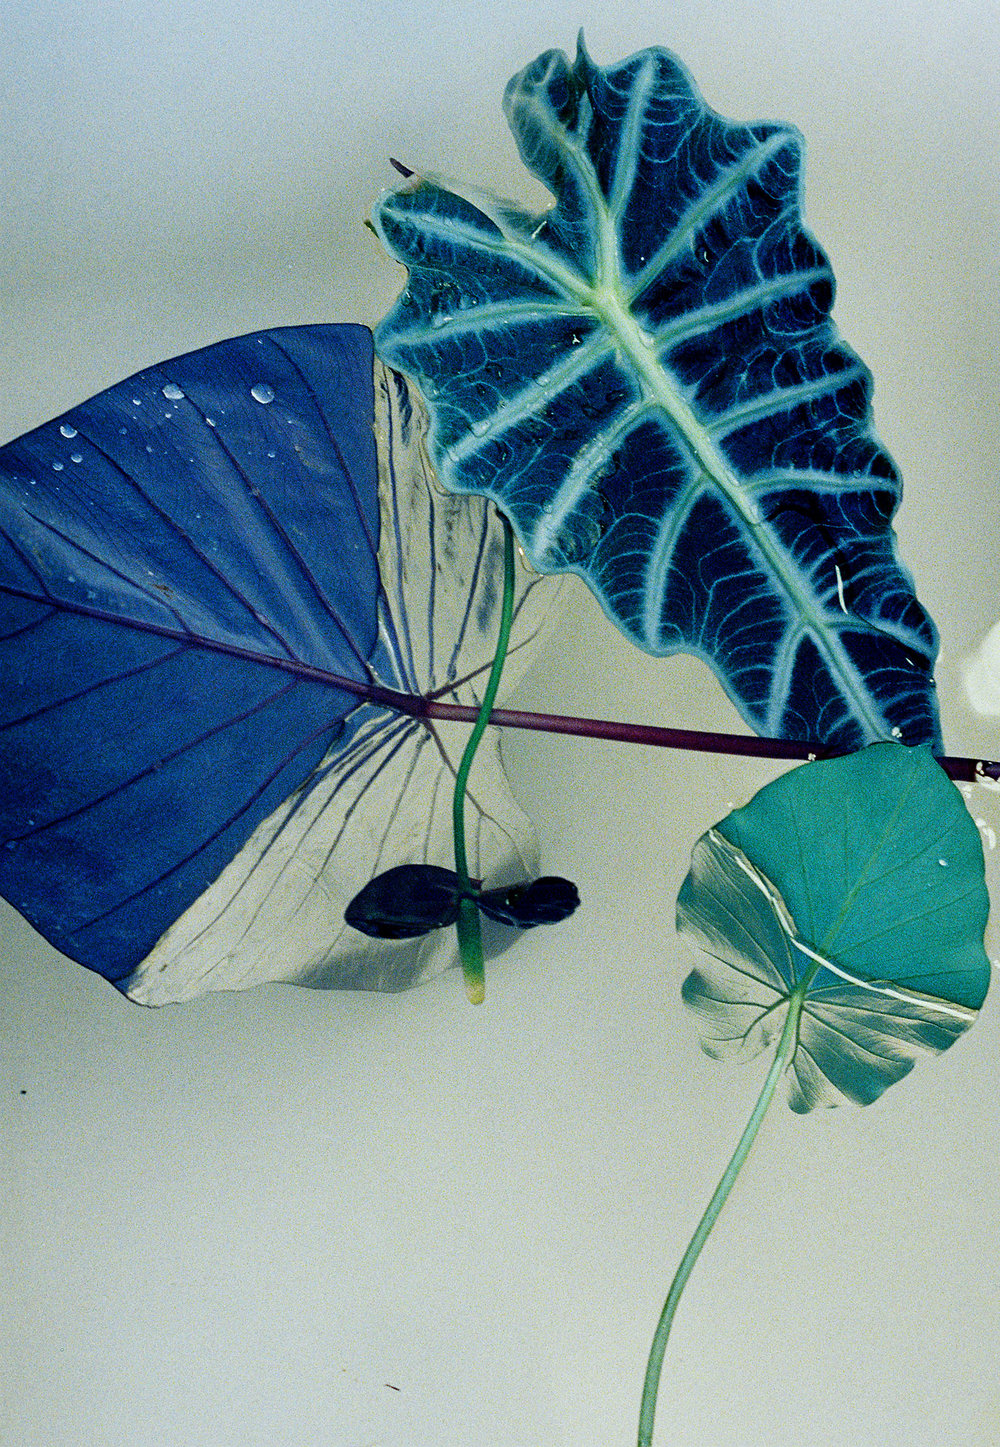 Hydrophobic leaves experimental film photography